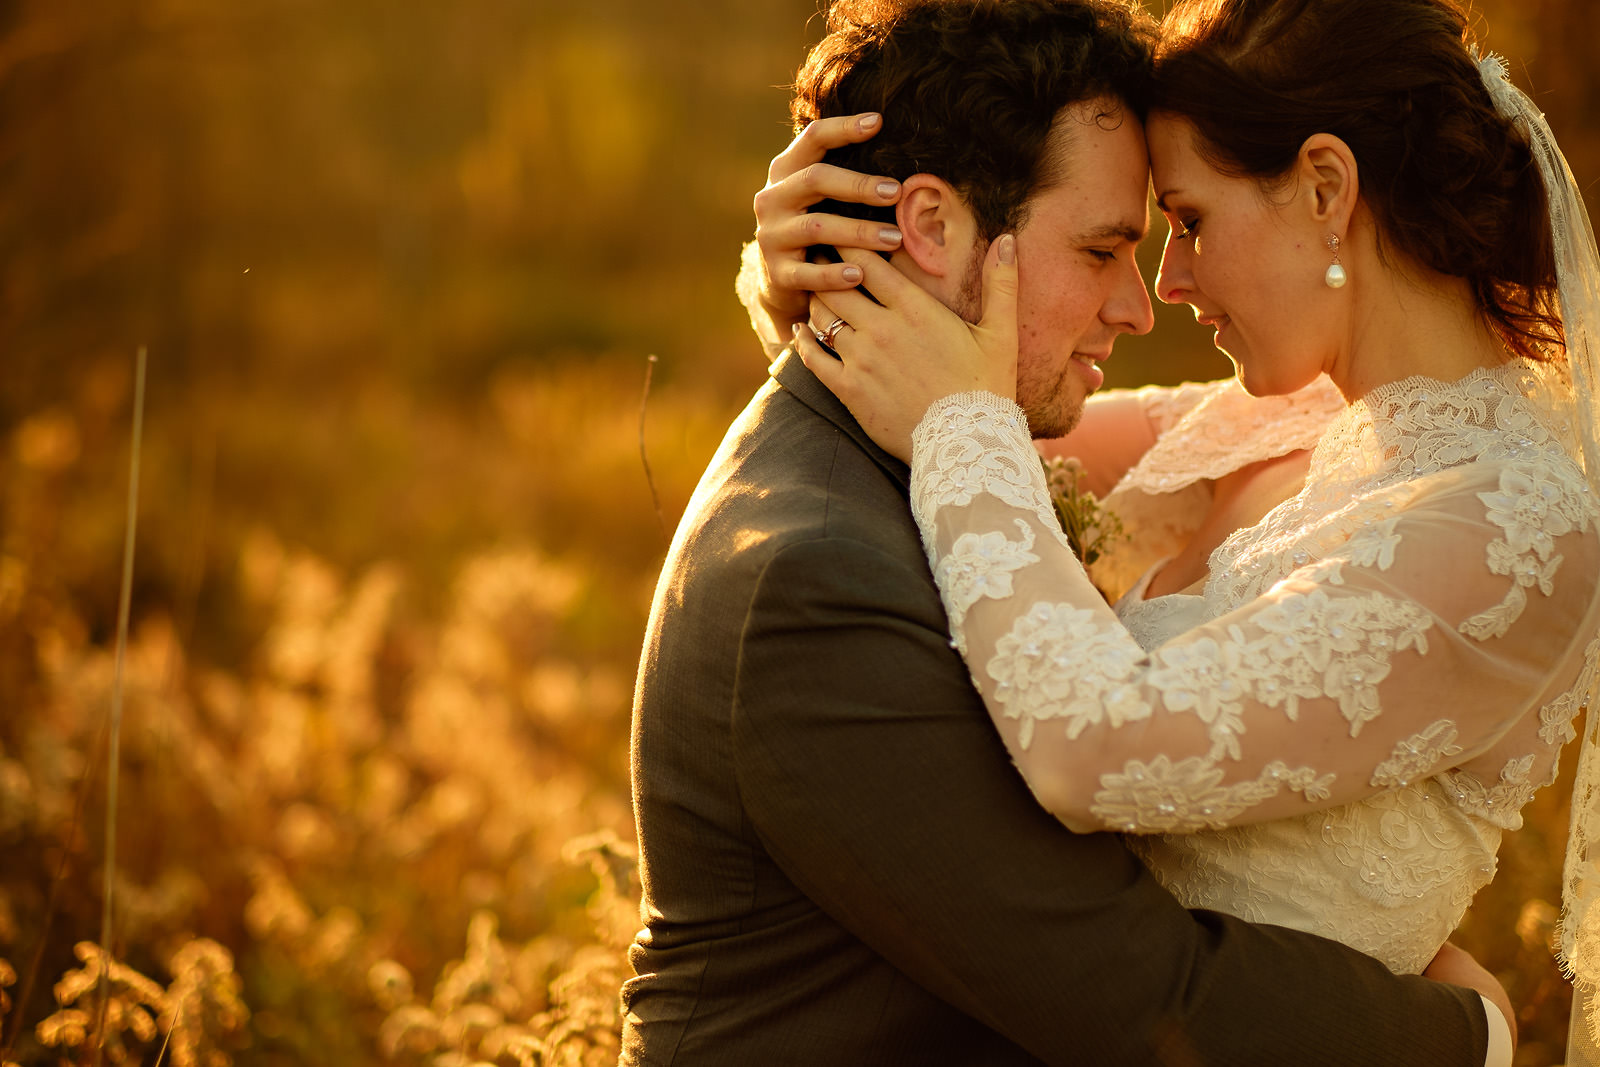 bride-hugging-groom-passionately-wheat-field